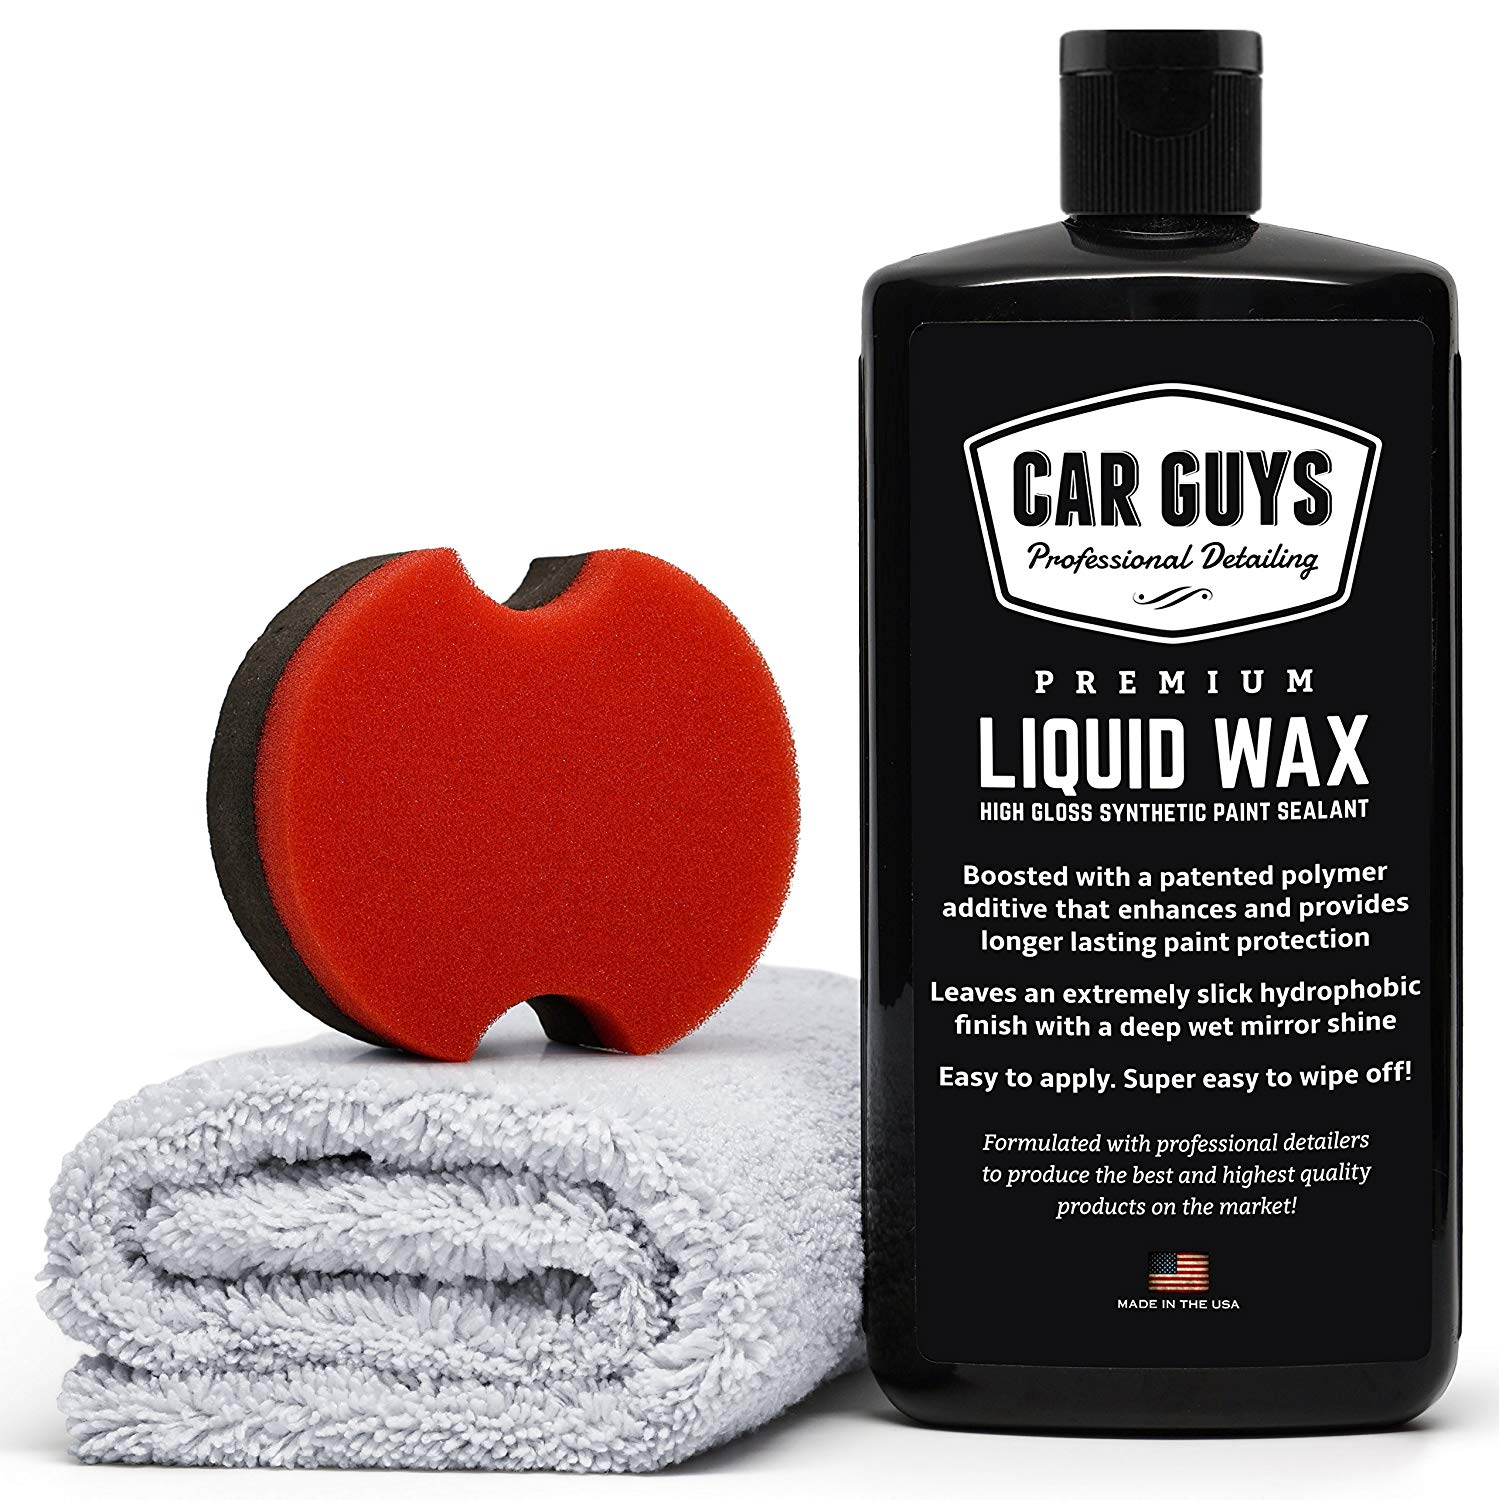 CarGuys Liquid Wax 16 oz Kit - $33.97 After 15%  Clip Coupon at Amazon